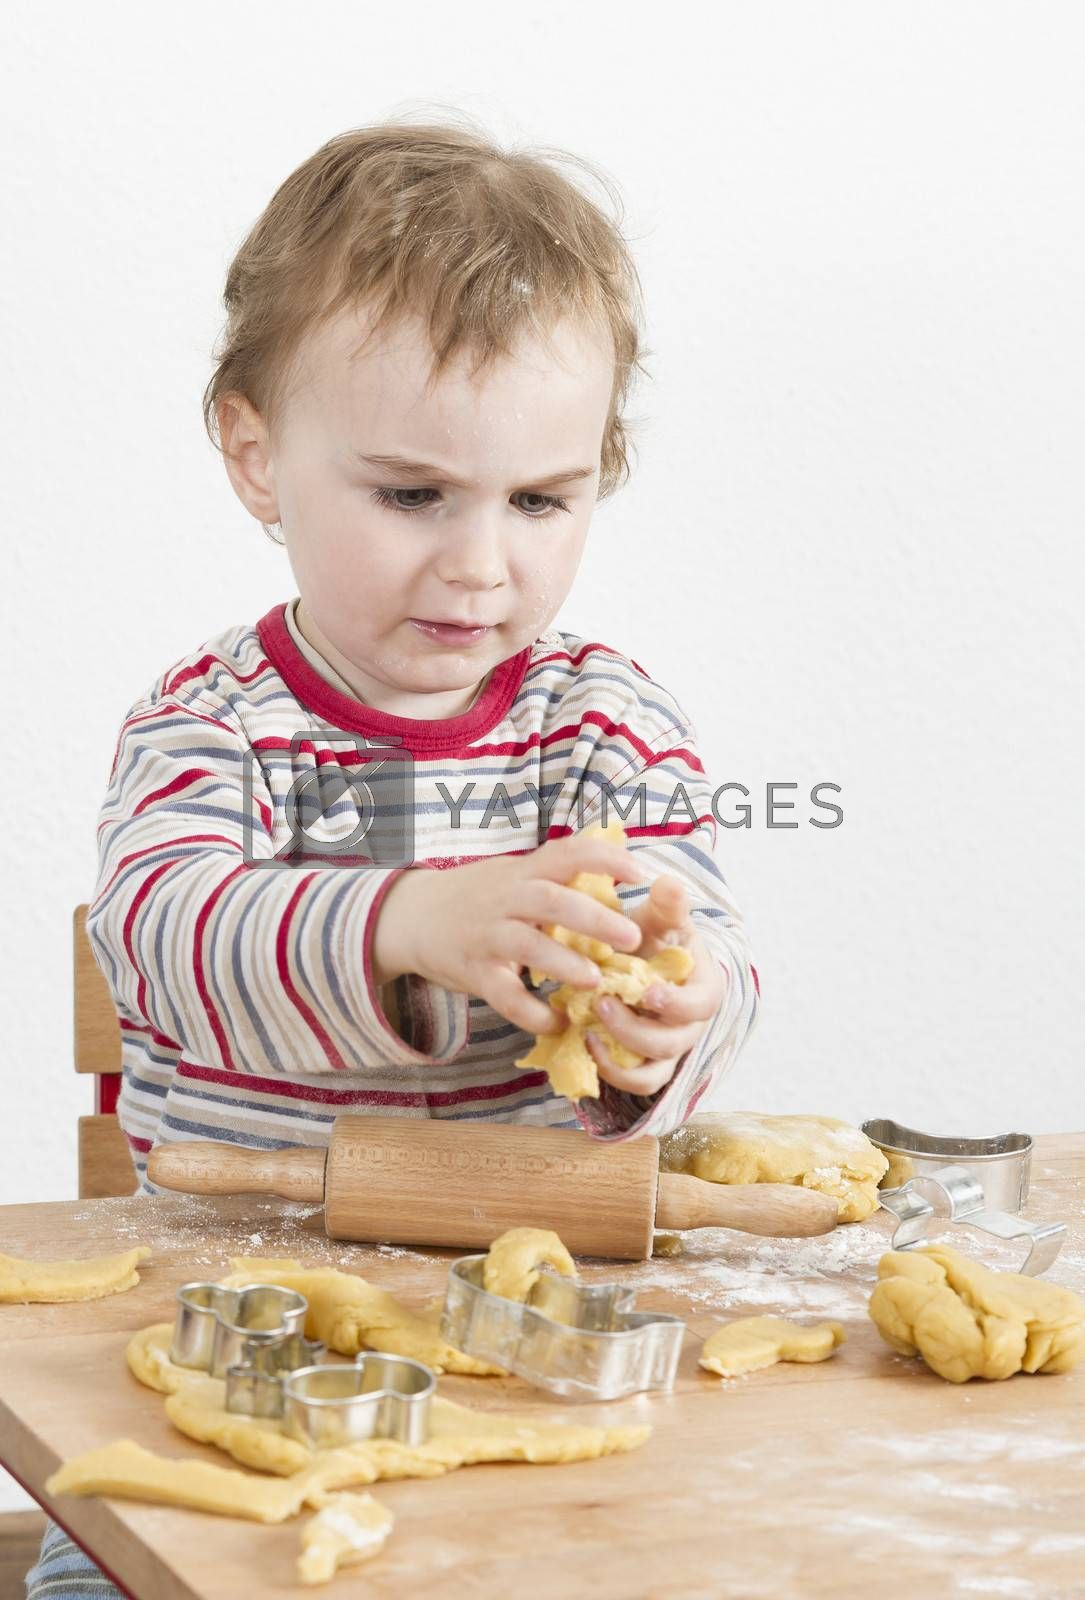 young child in vertical image looking at baking tools and working with dough